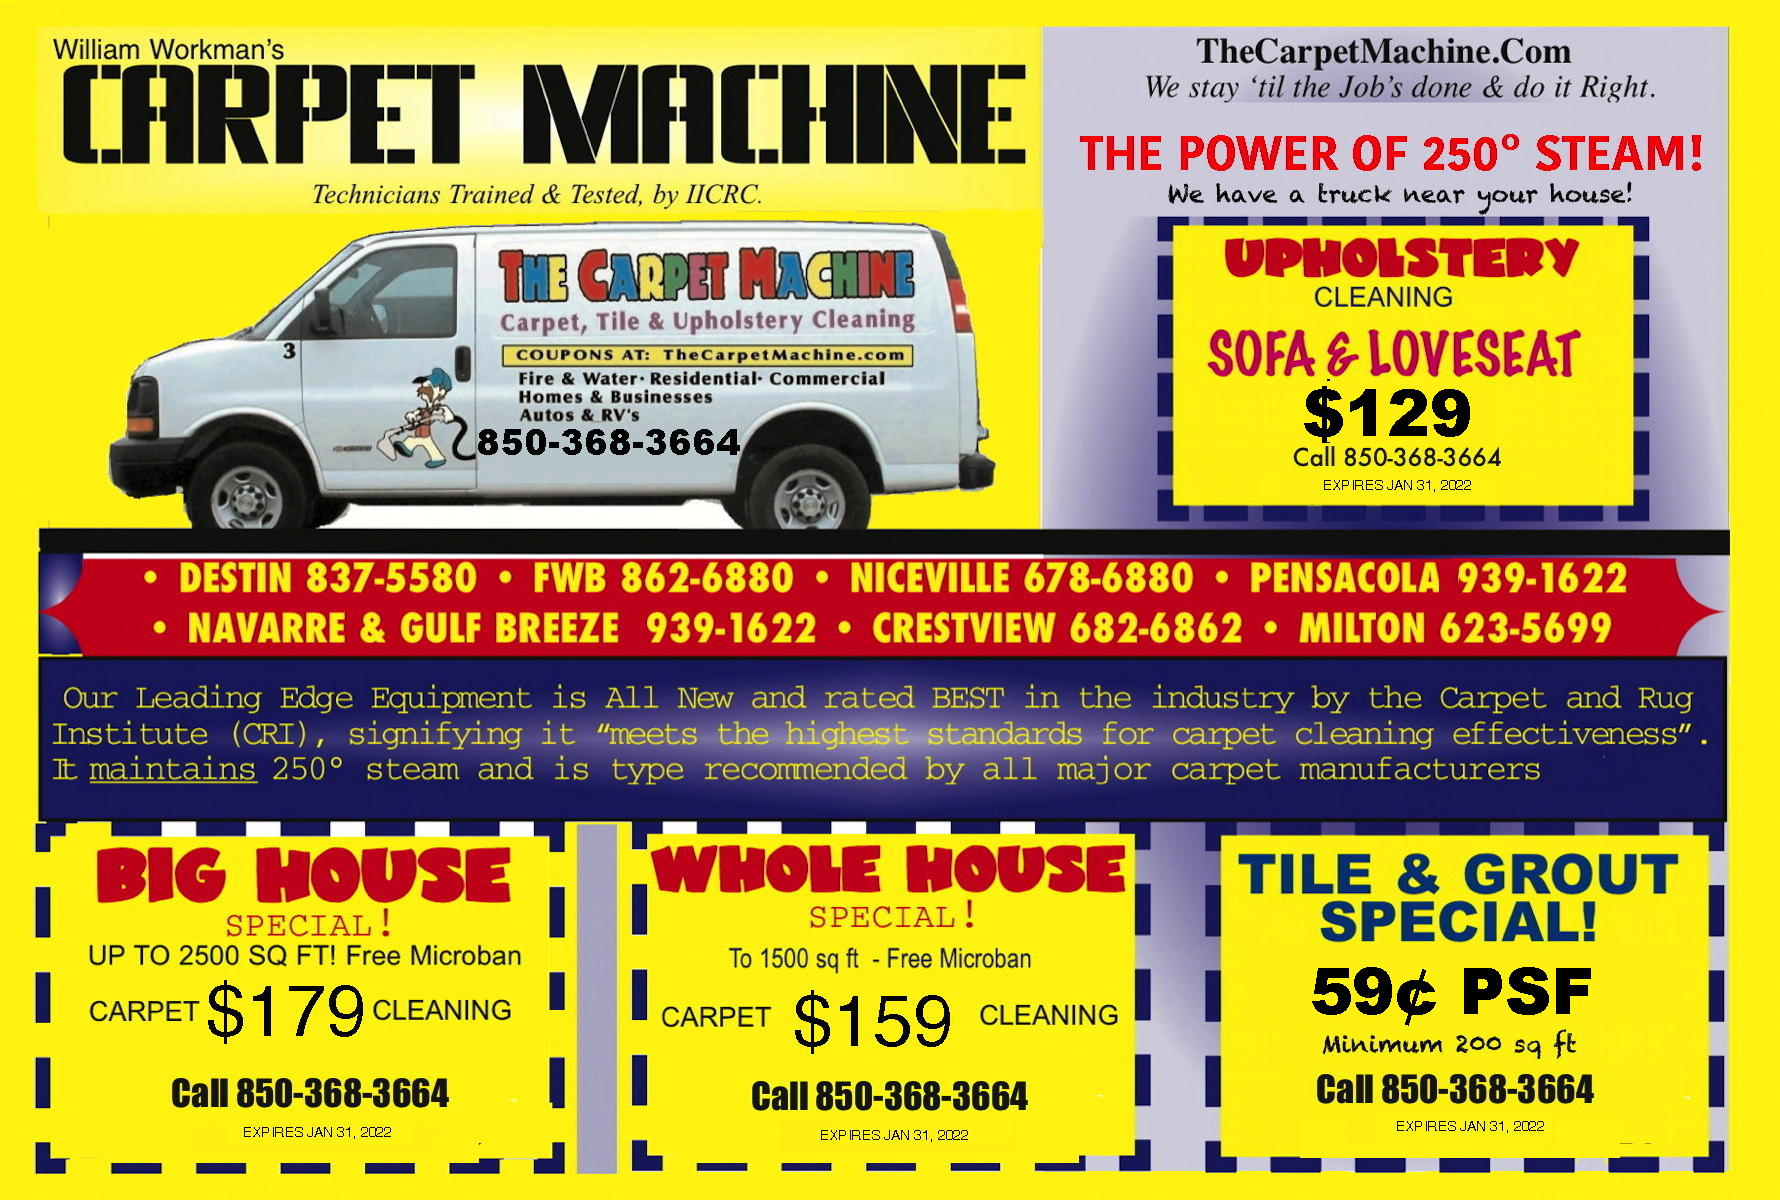 Fort Walton Beach Shalimar Mary Esther Carpet, Tile & Upholstery Cleaning Coupons